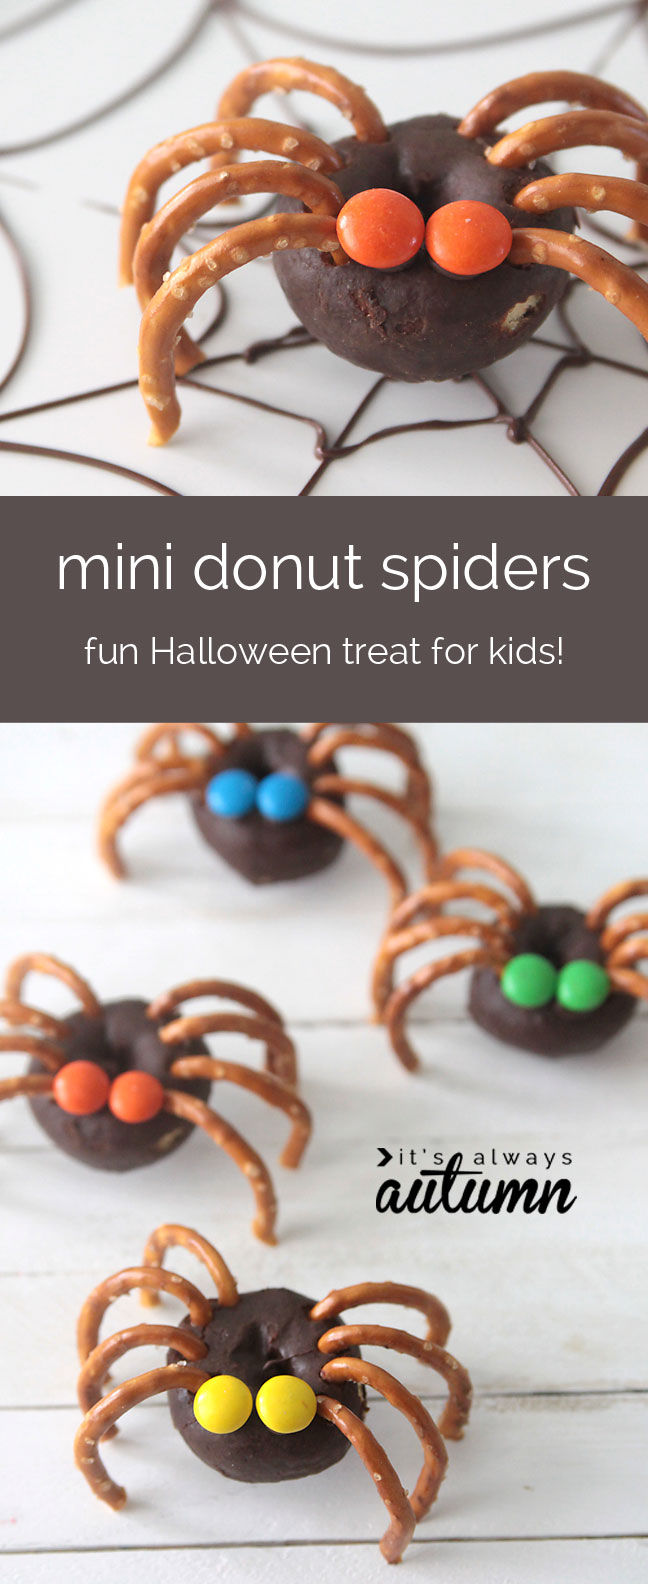 Mini Donut Spiders Pictures Photos And Images For